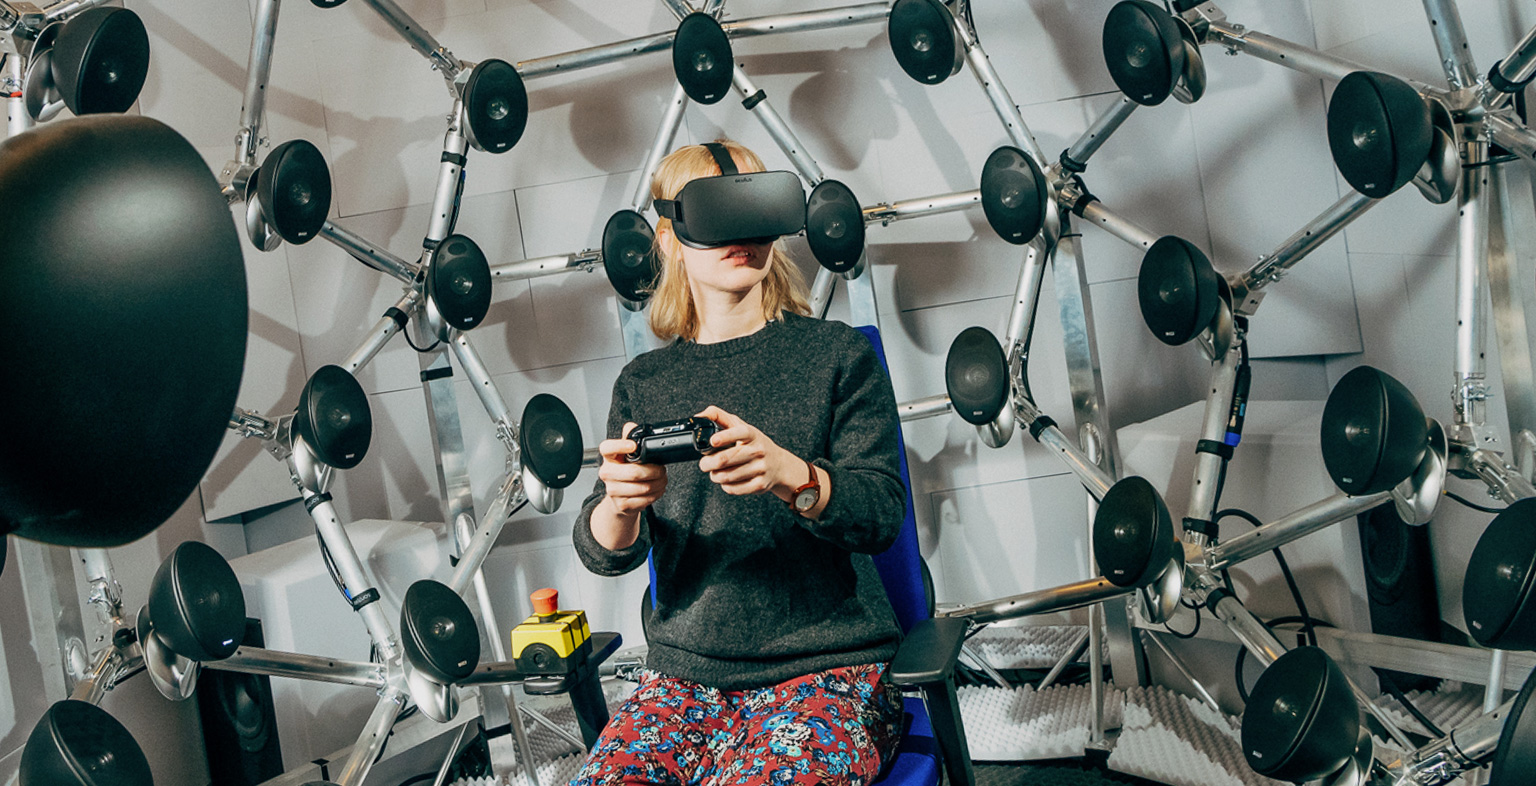 Lady sitting with a virtual headset on and holding a controller surrounded by speakers